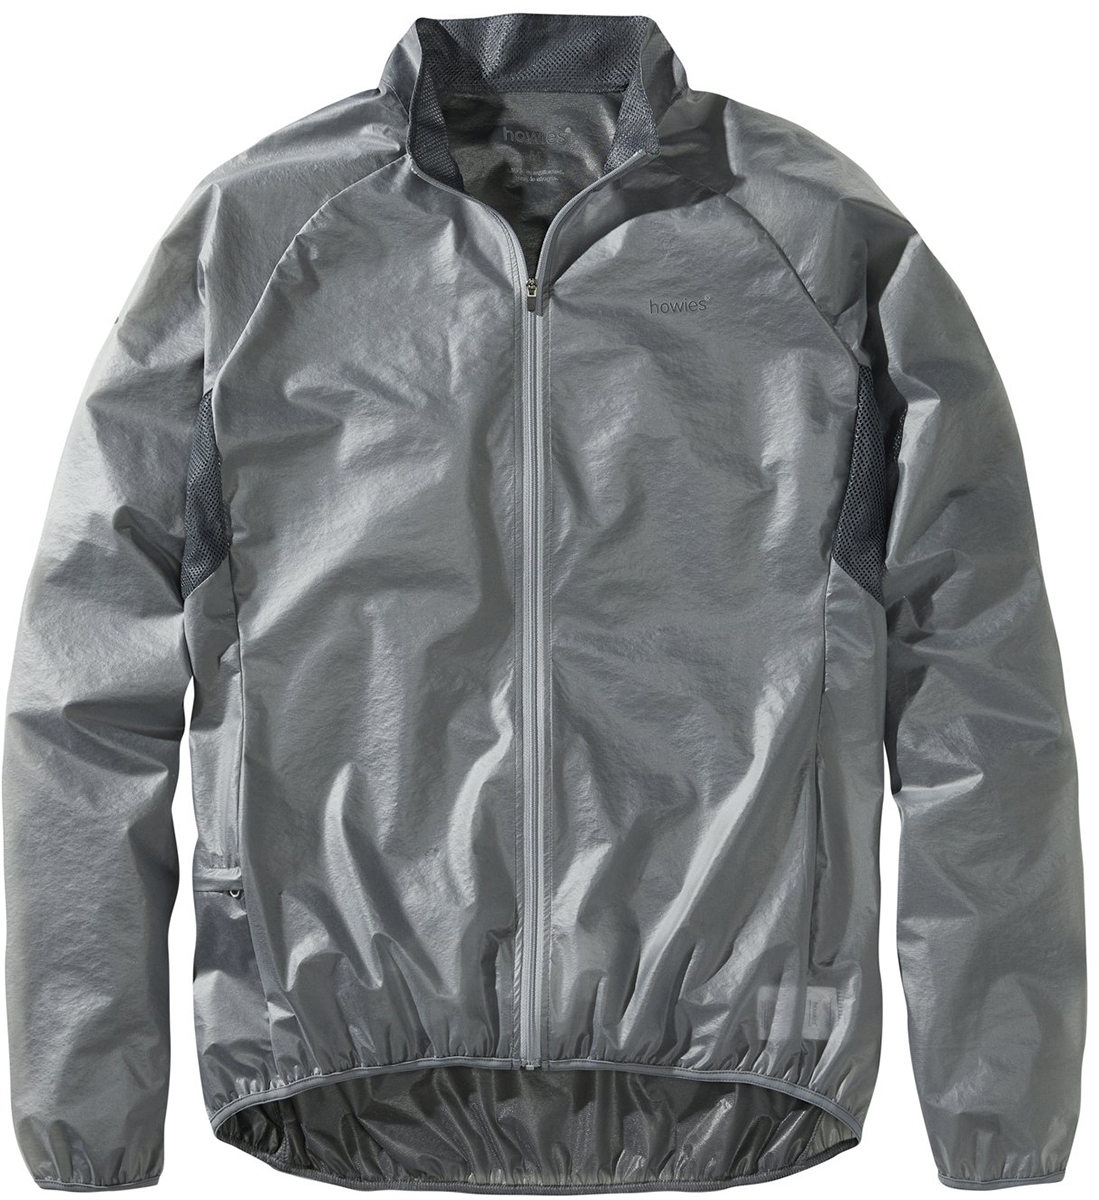 howies Clearim Jacket | Jackets